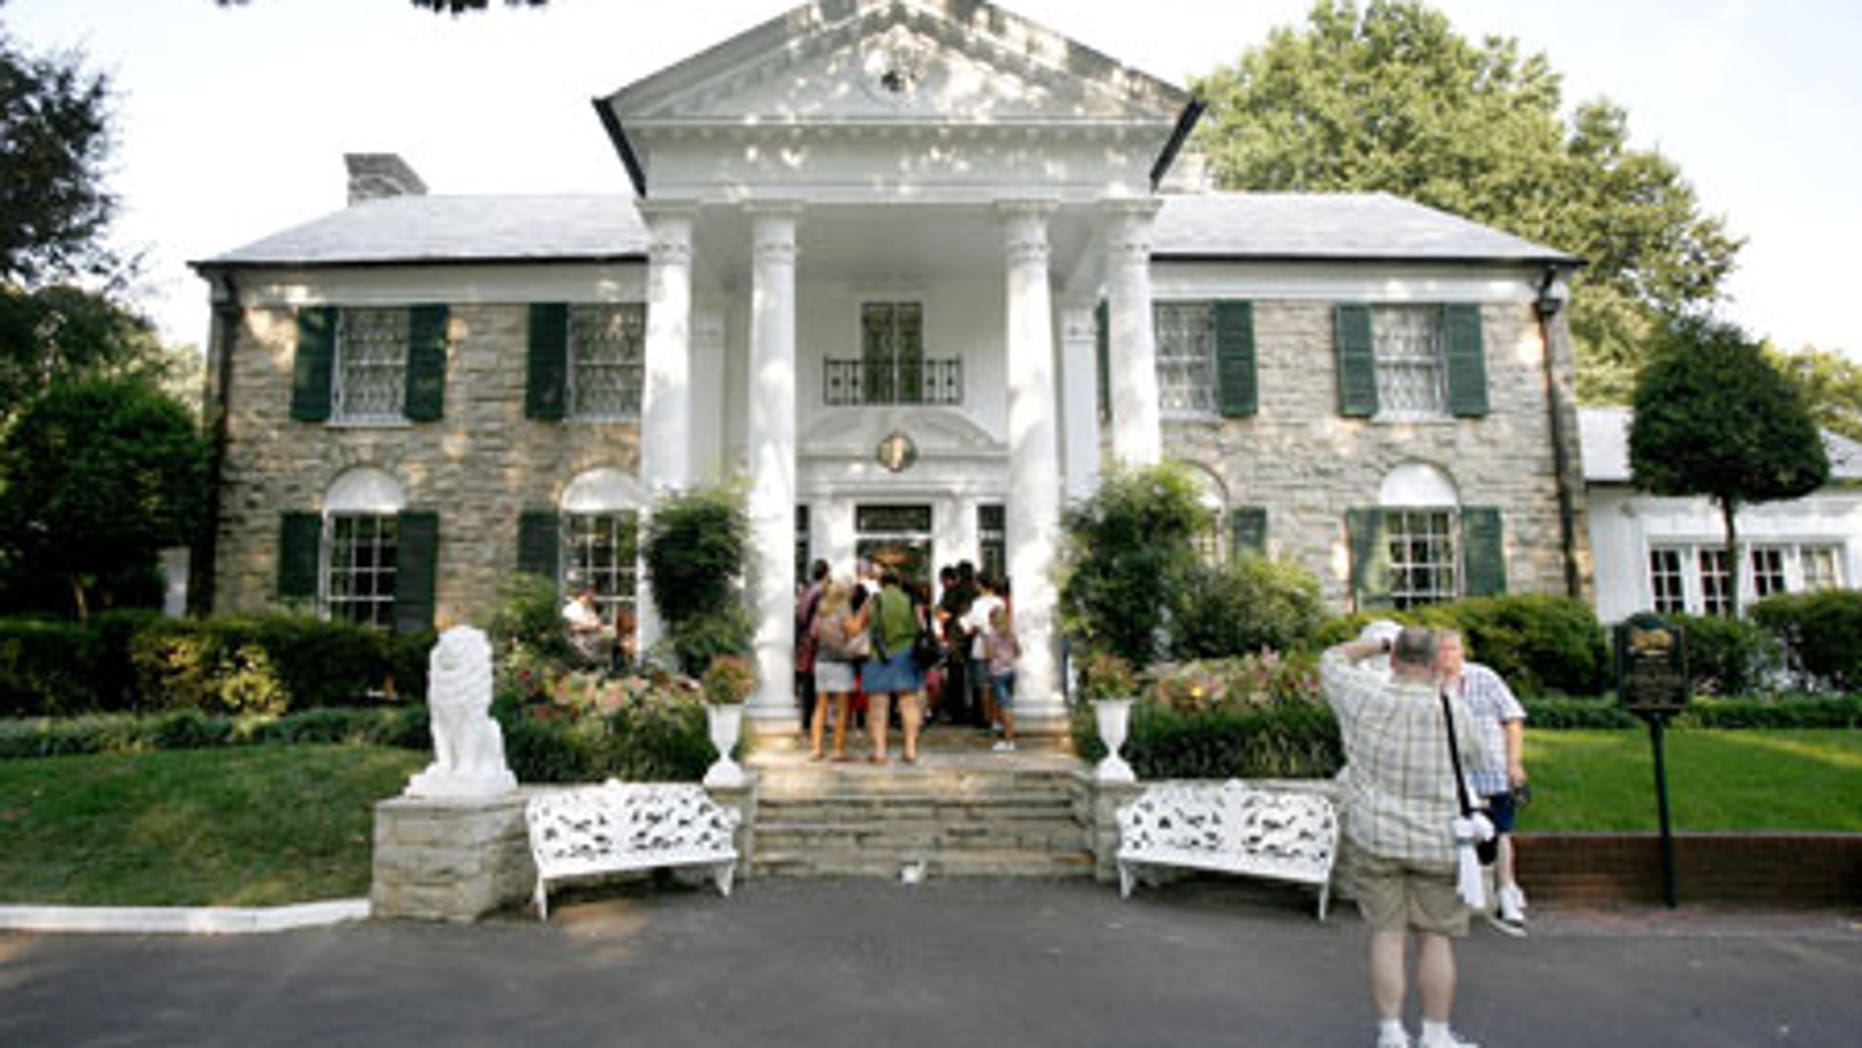 The Graceland estate and mansion is the former home of rock legend Elvis Presley and is now the site of a museum dedicated to the king of rock and roll. An annual procession is held that allows fans to travel through the estate and past Elvis' grave on the anniversary of his death. In 2002, it was estimated that a whopping 40,000 people attended the procession, despite pouring rain.